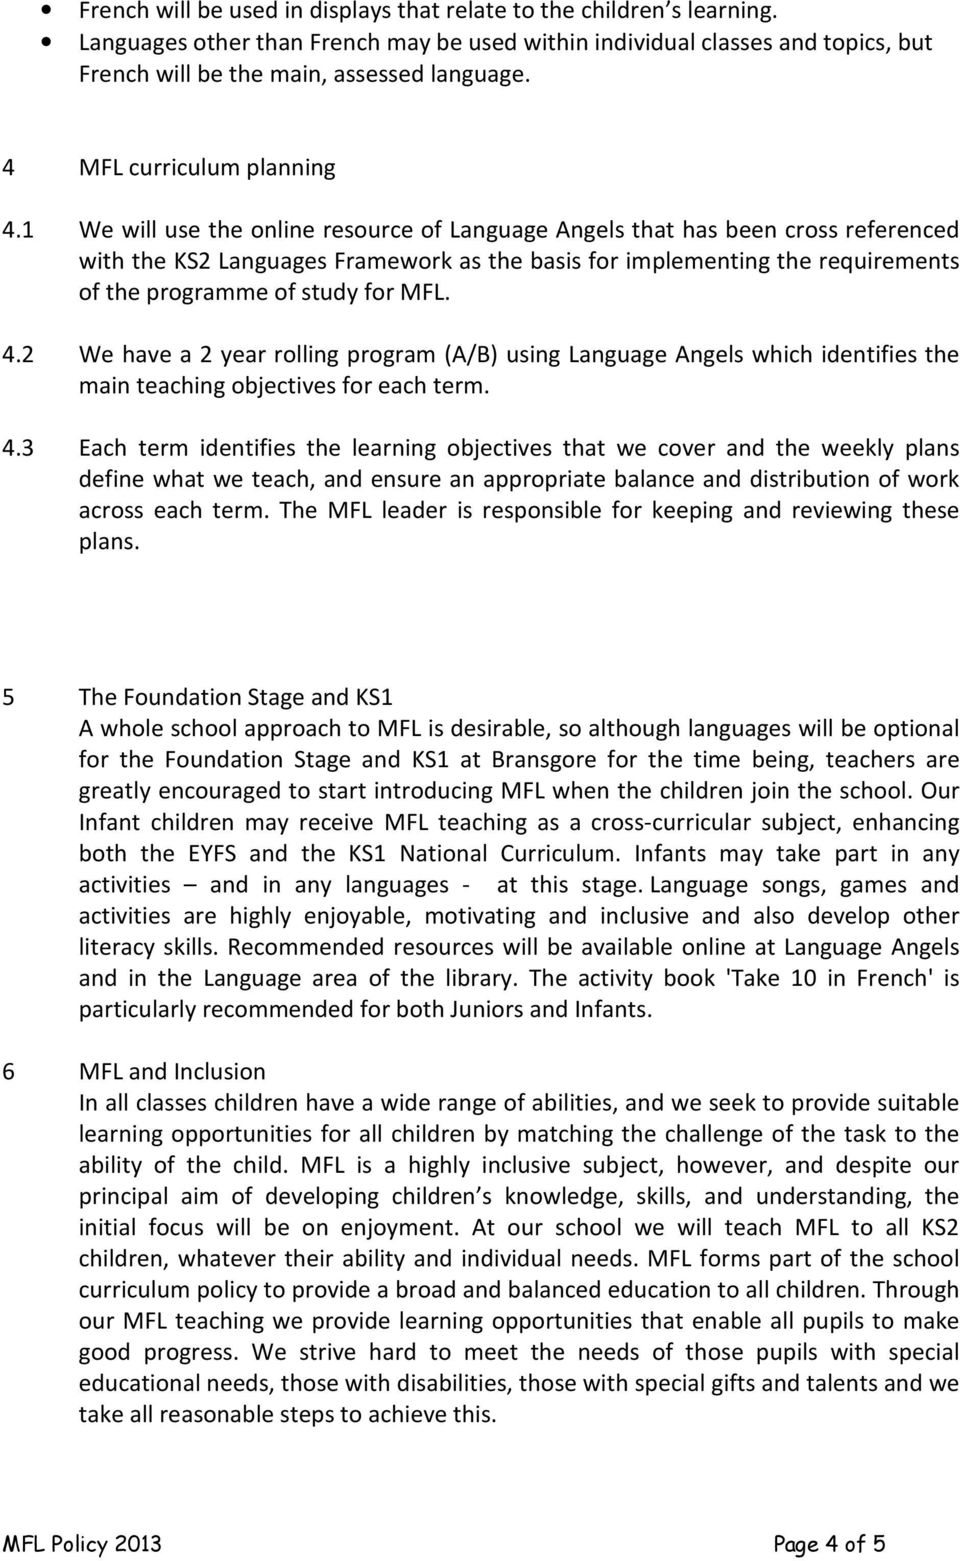 1 We will use the online resource of Language Angels that has been cross referenced with the KS2 Languages Framework as the basis for implementing the requirements of the programme of study for MFL.